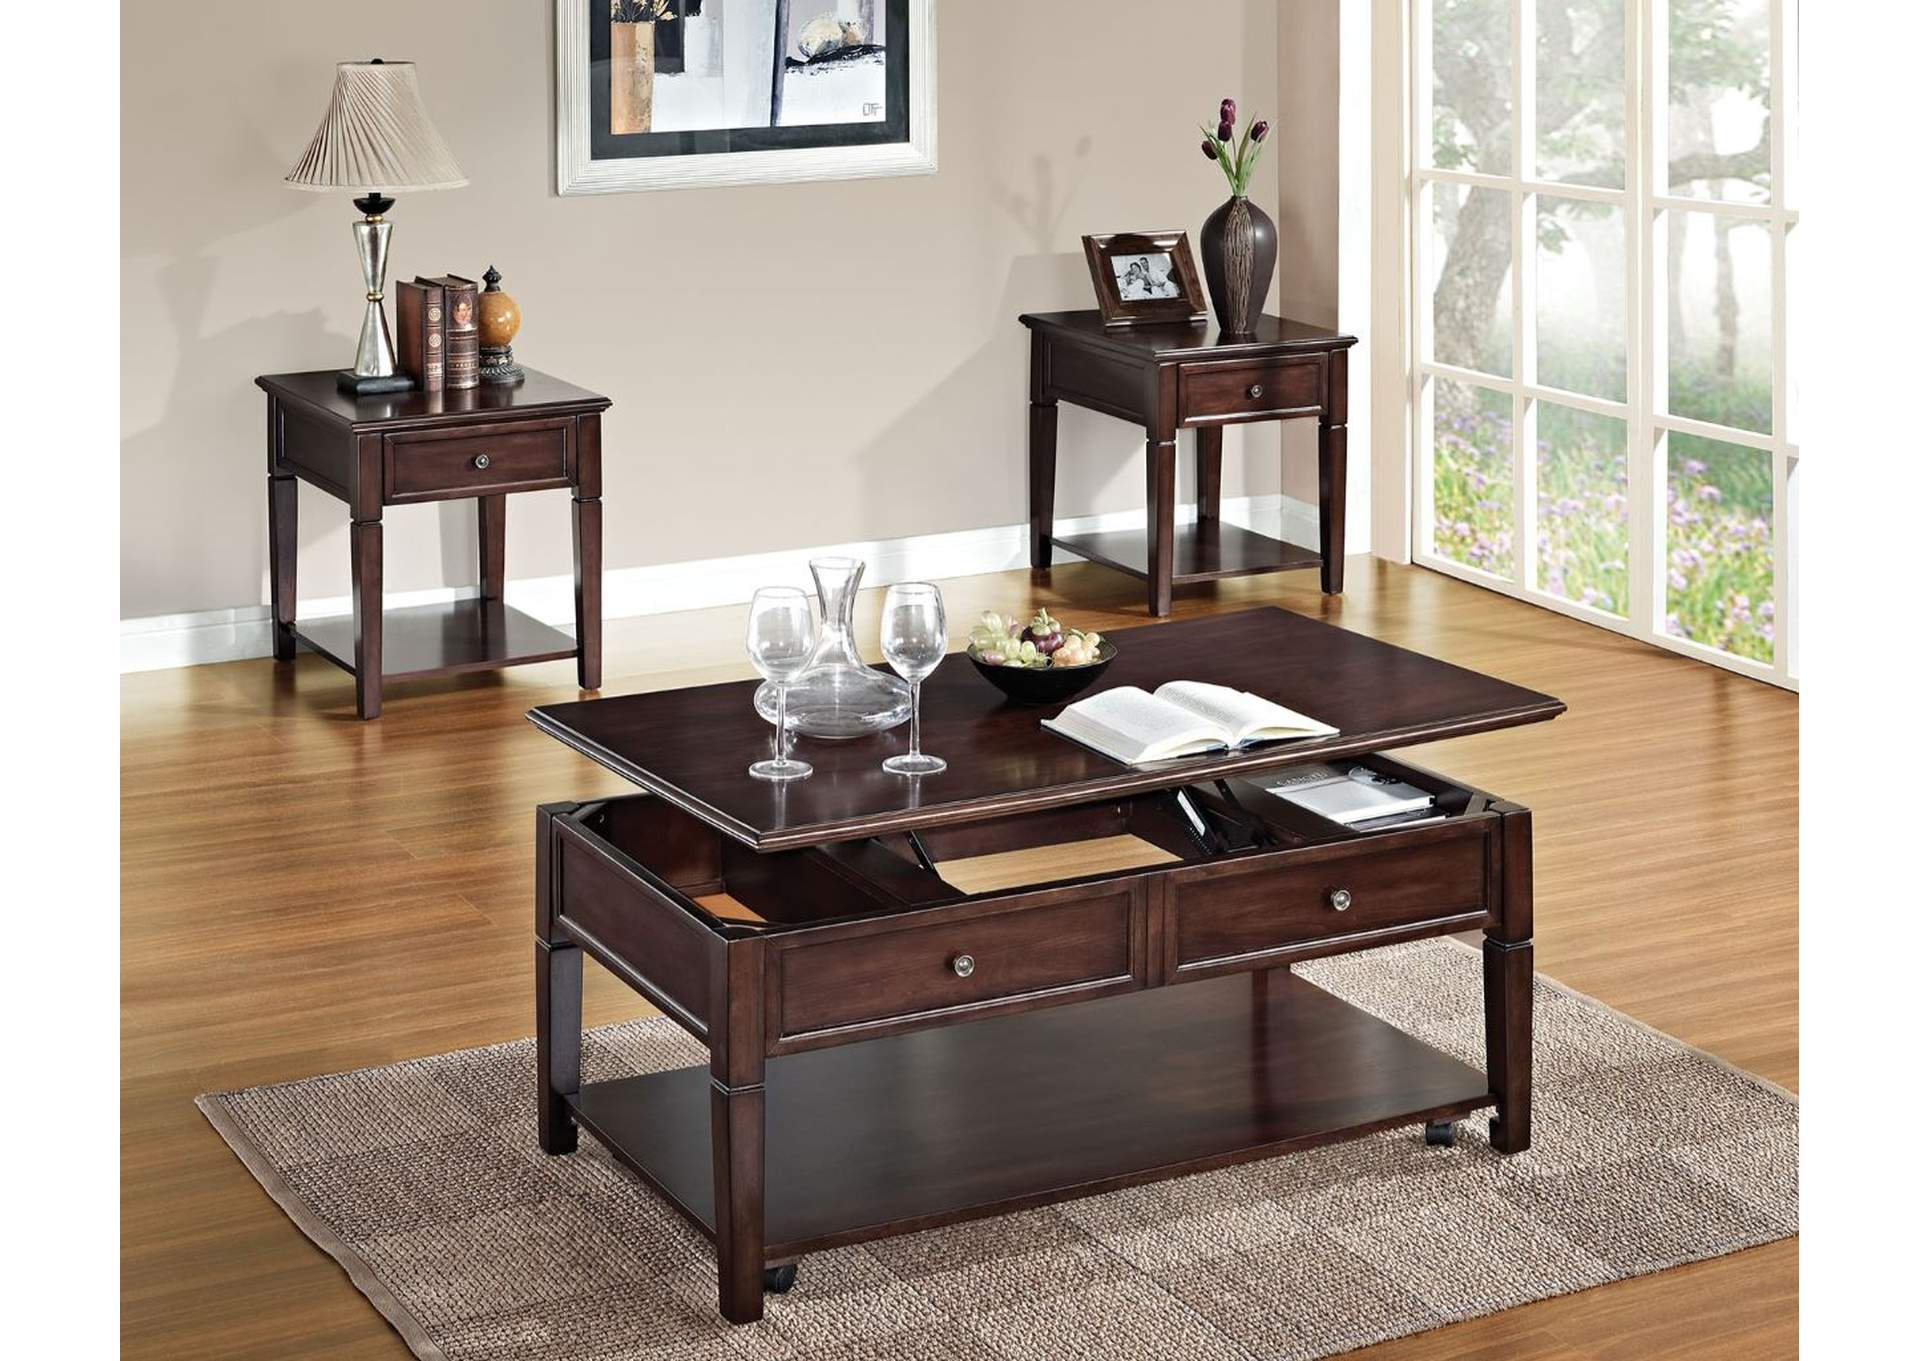 Malachi Walnut End Table,Acme